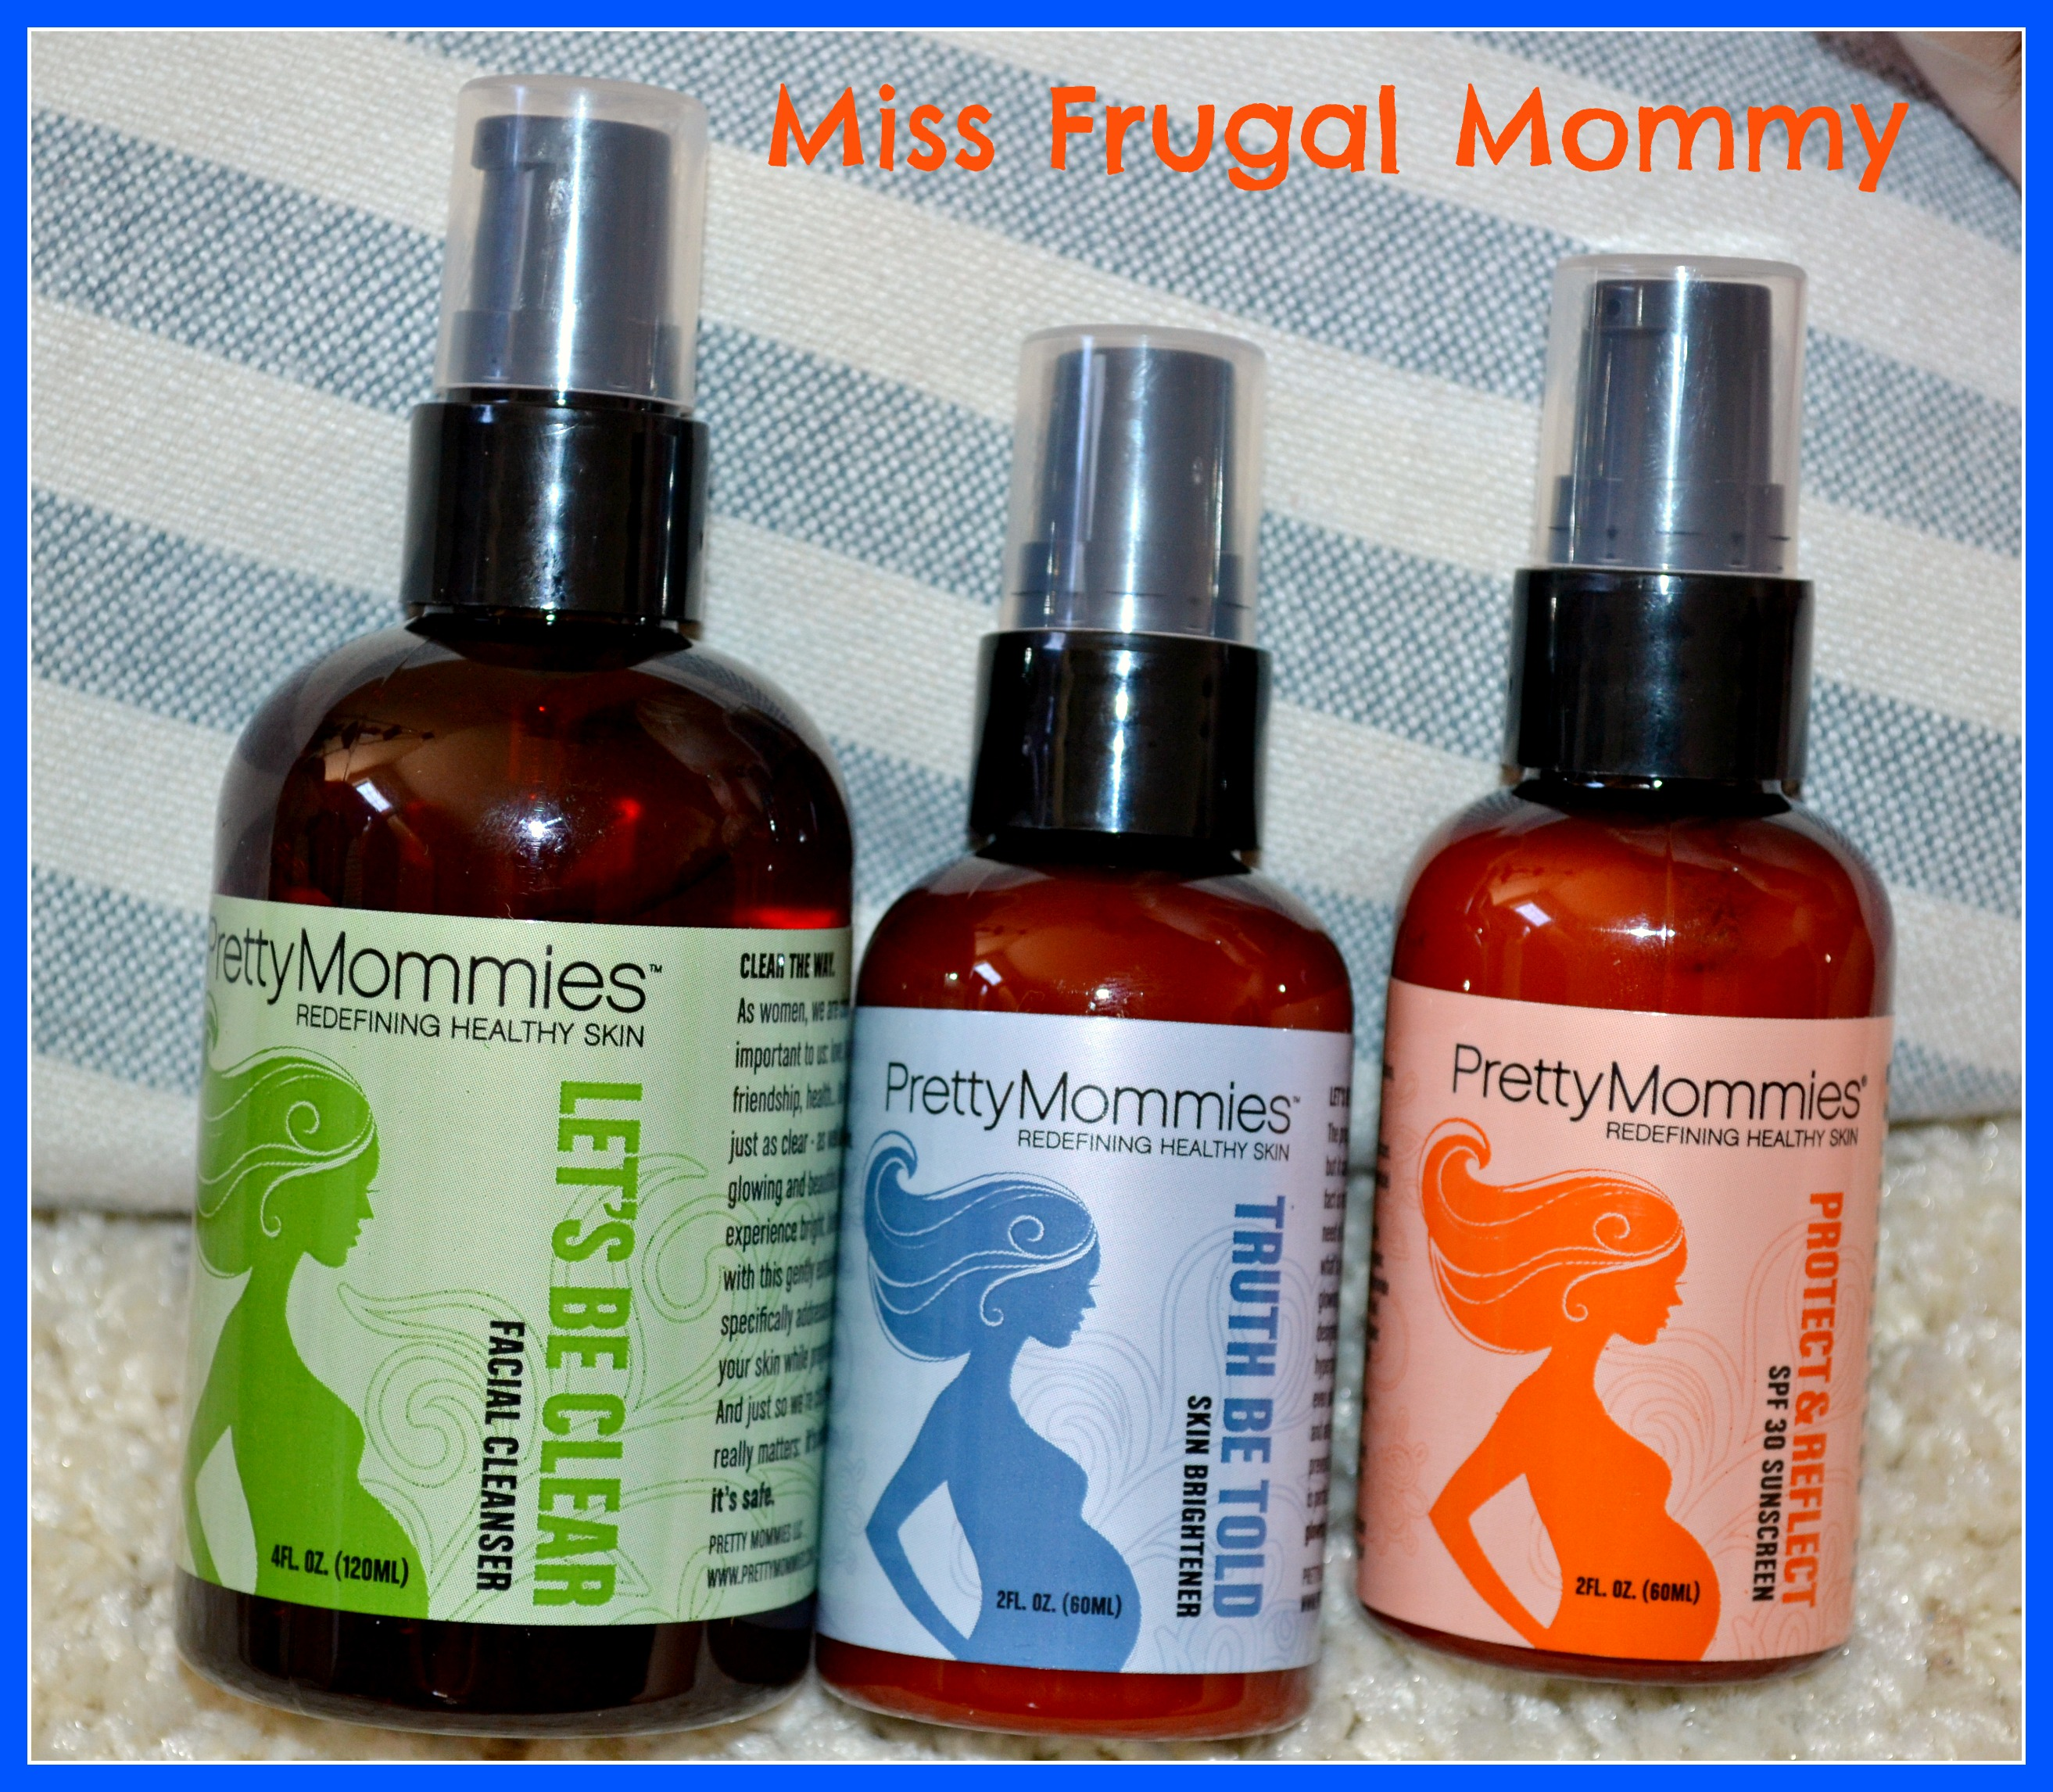 Pretty Mommies Skincare Review